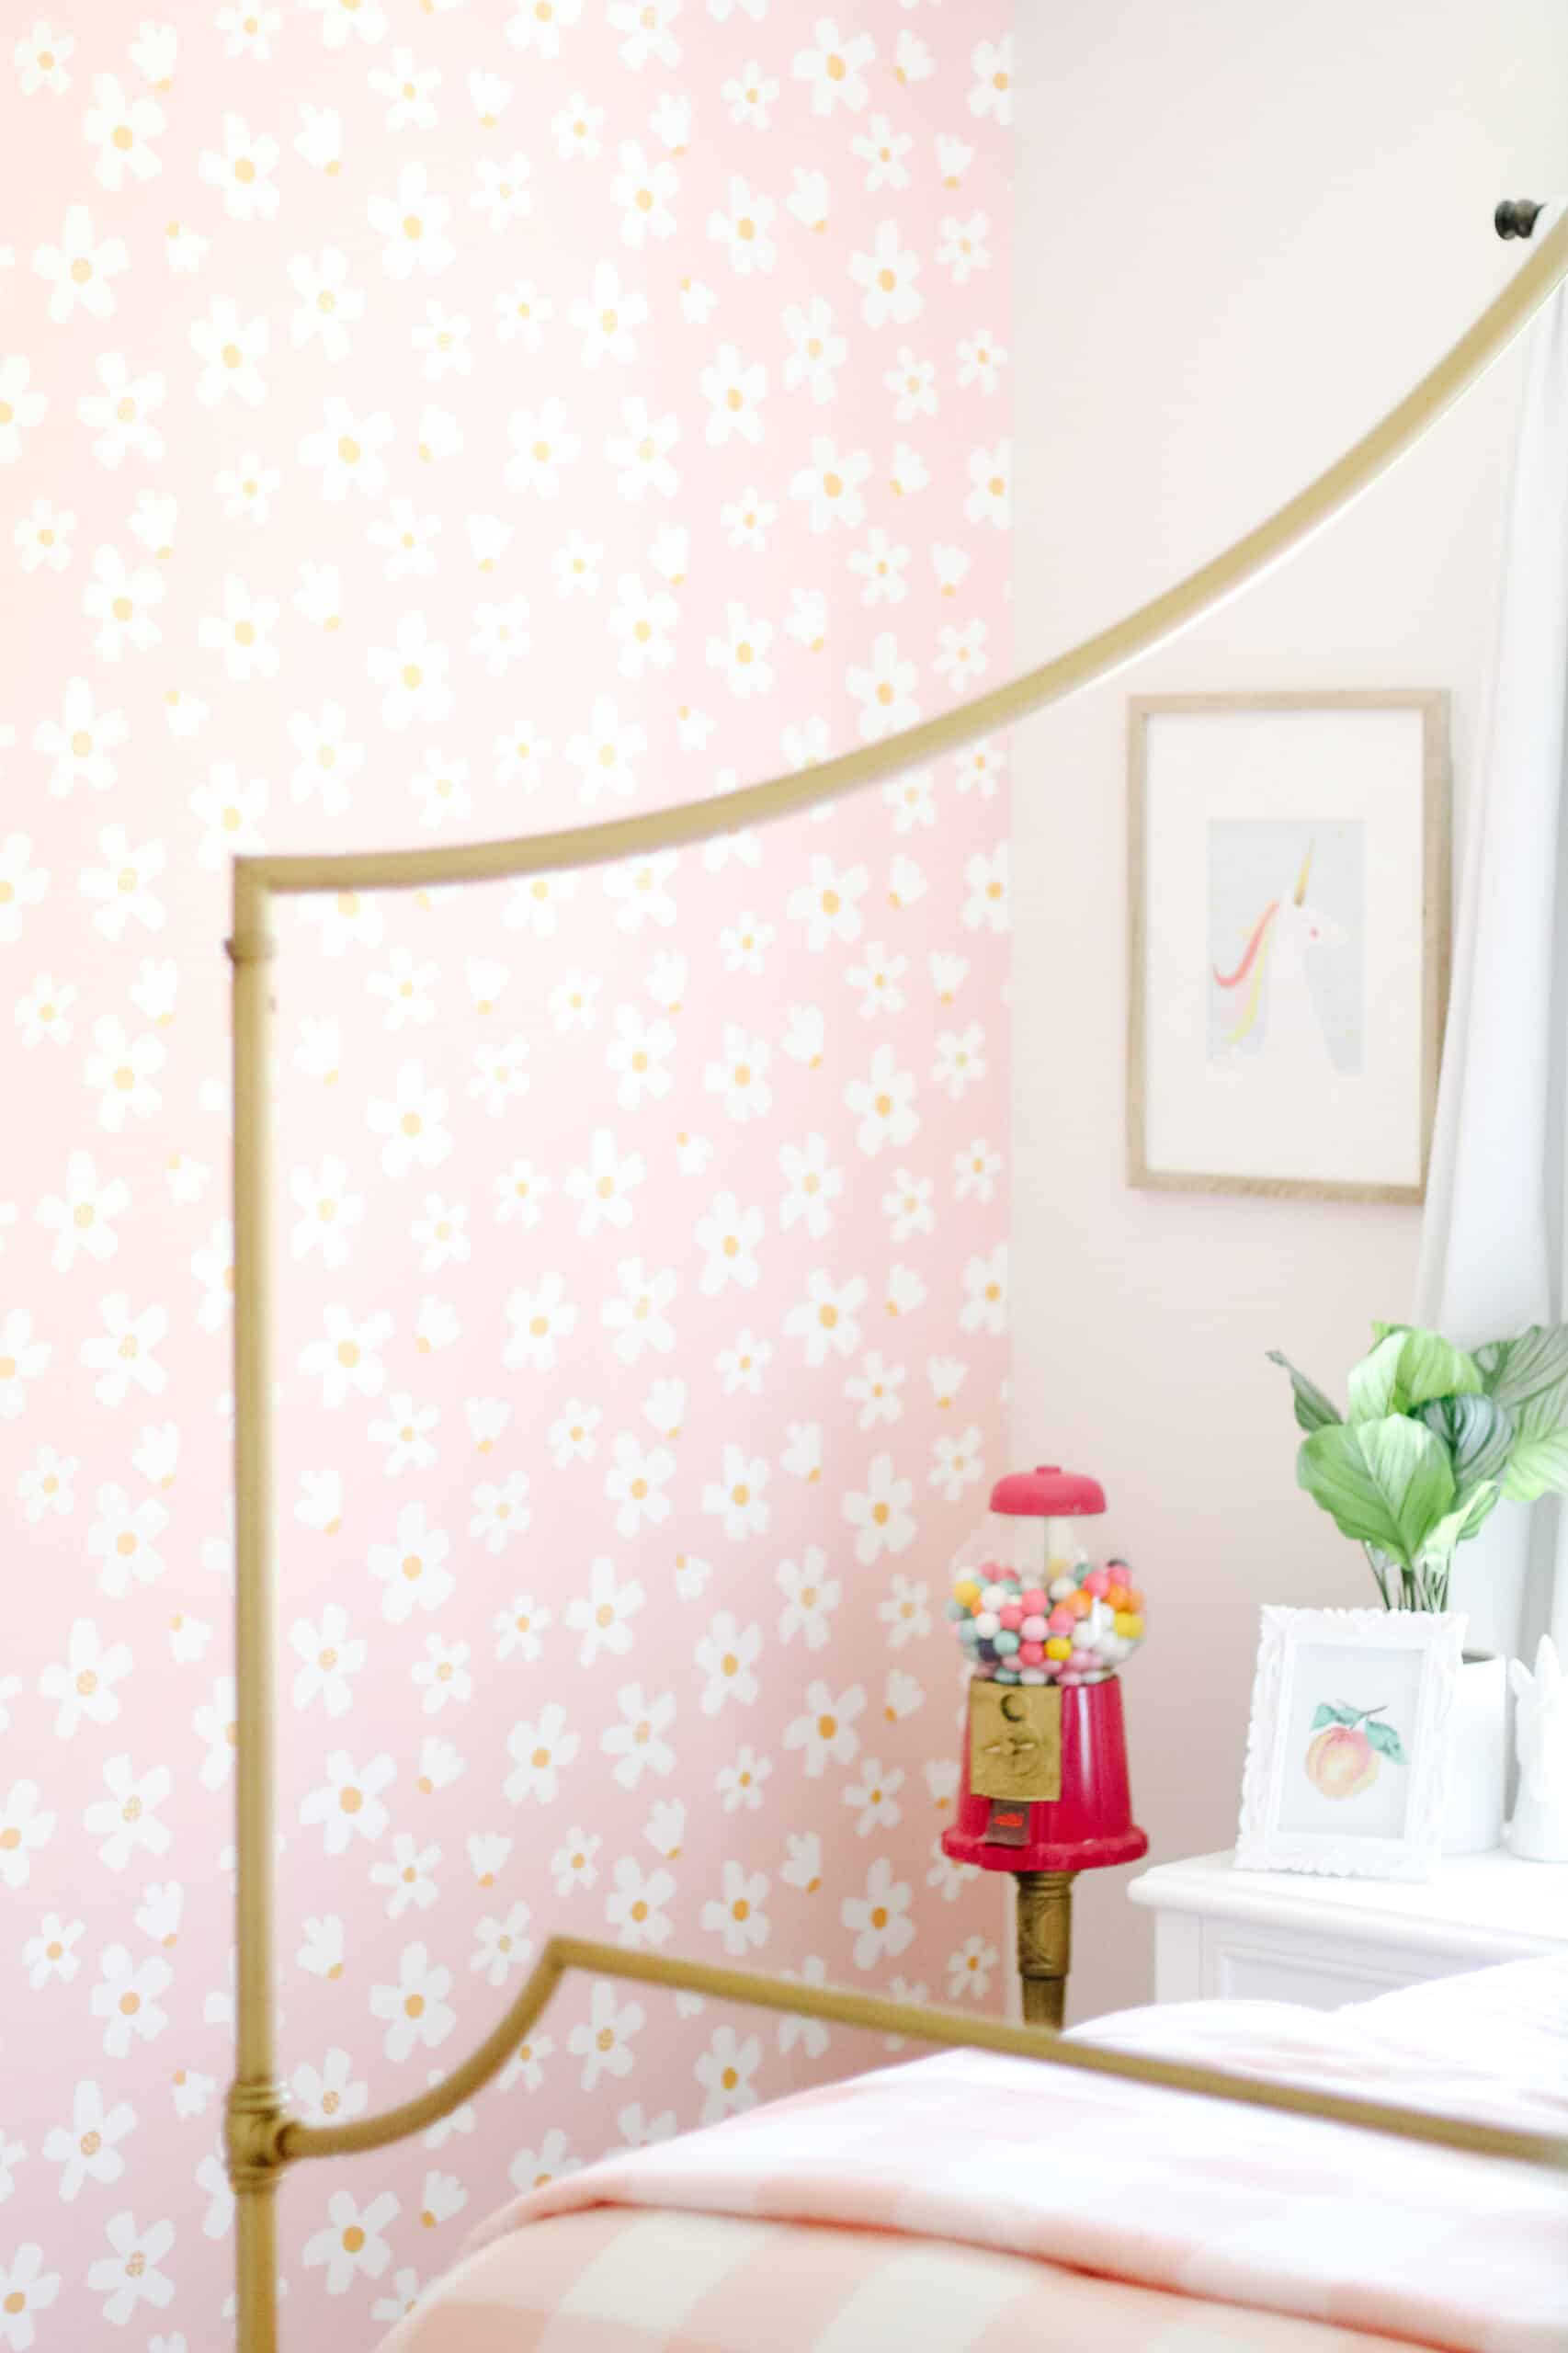 room with pink gumball machine and daisy wallpaper